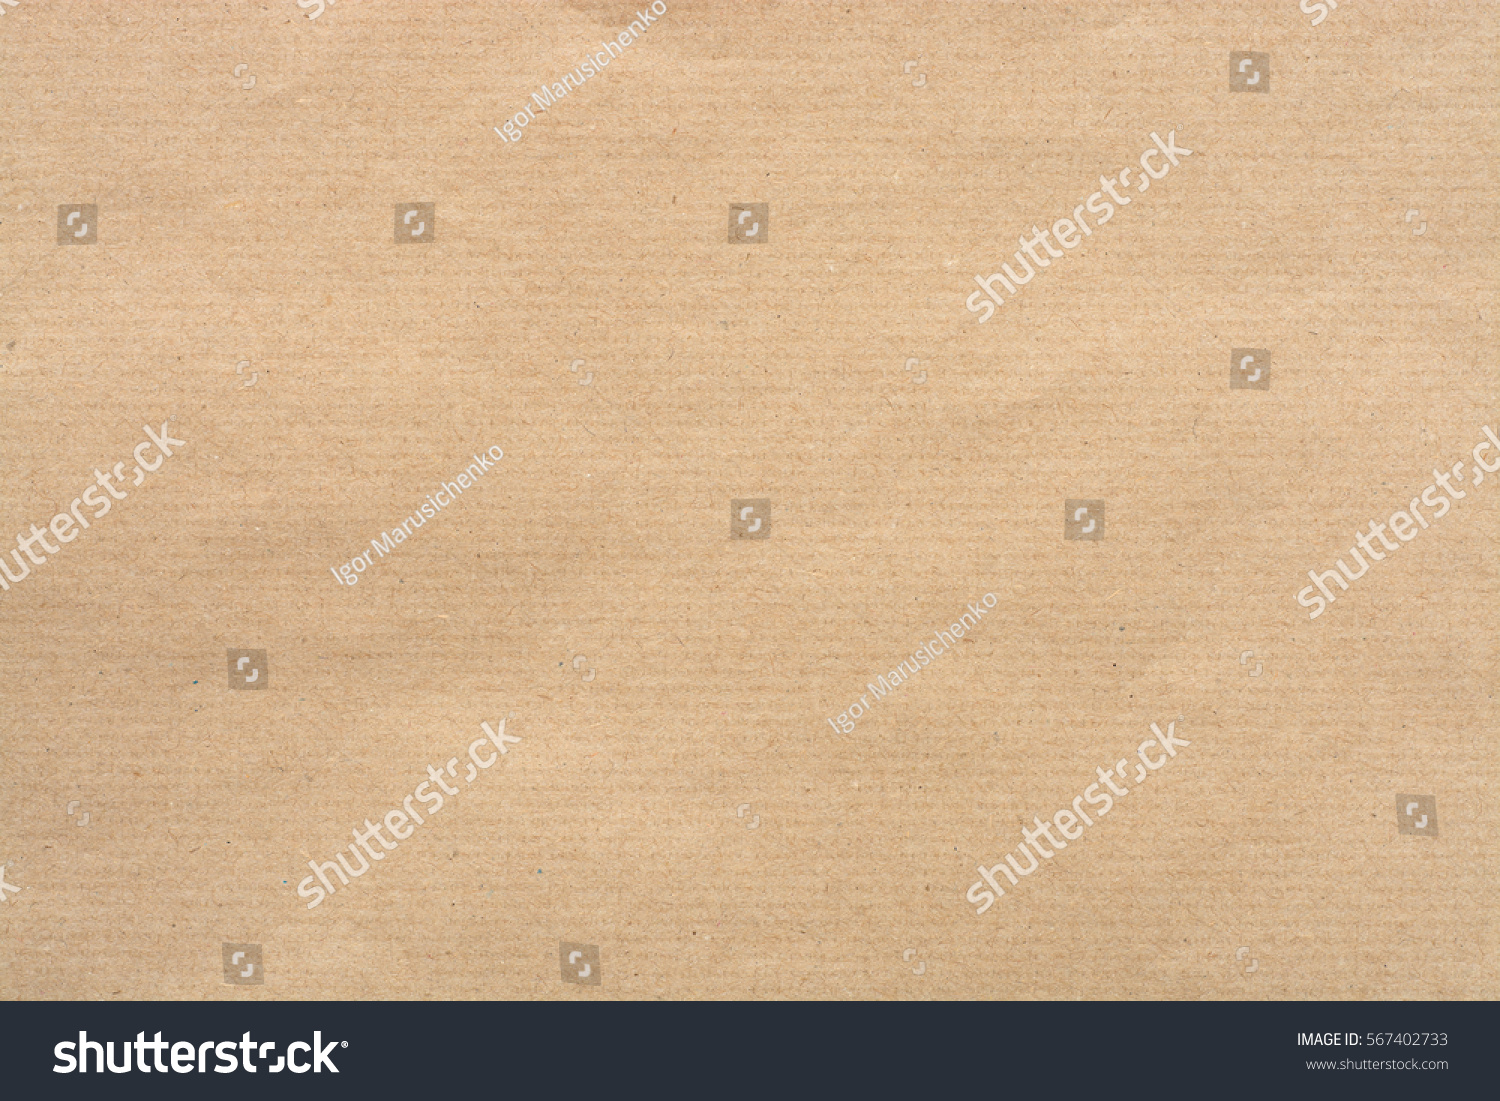 Kraft Paper Texture with horizontal stripes for background. #567402733